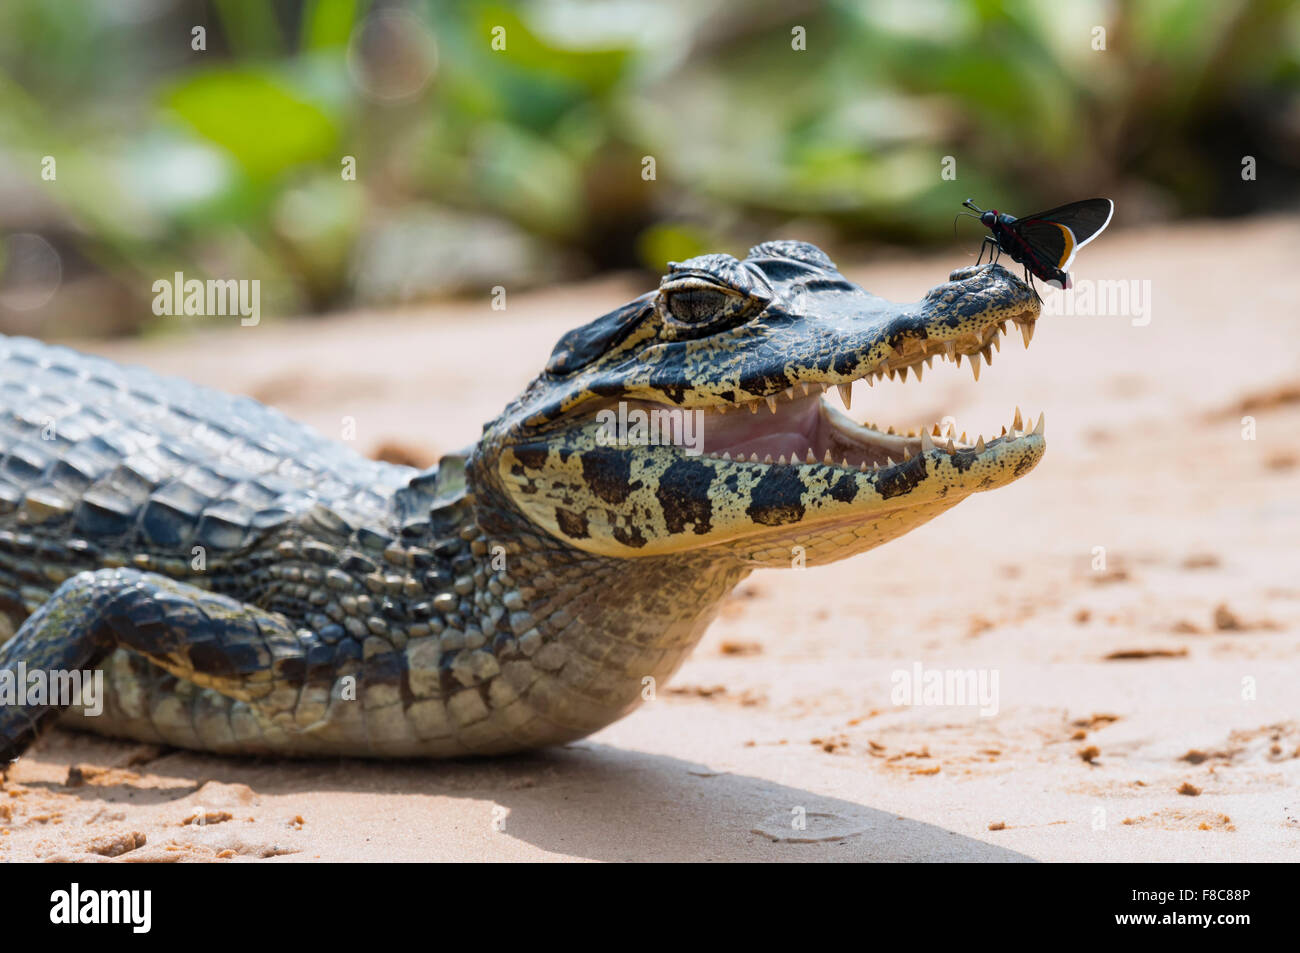 Young Yacare caiman (Caiman yacare) with a butterfly on its nose, Cuiaba river, Pantanal, Brazil - Stock Image